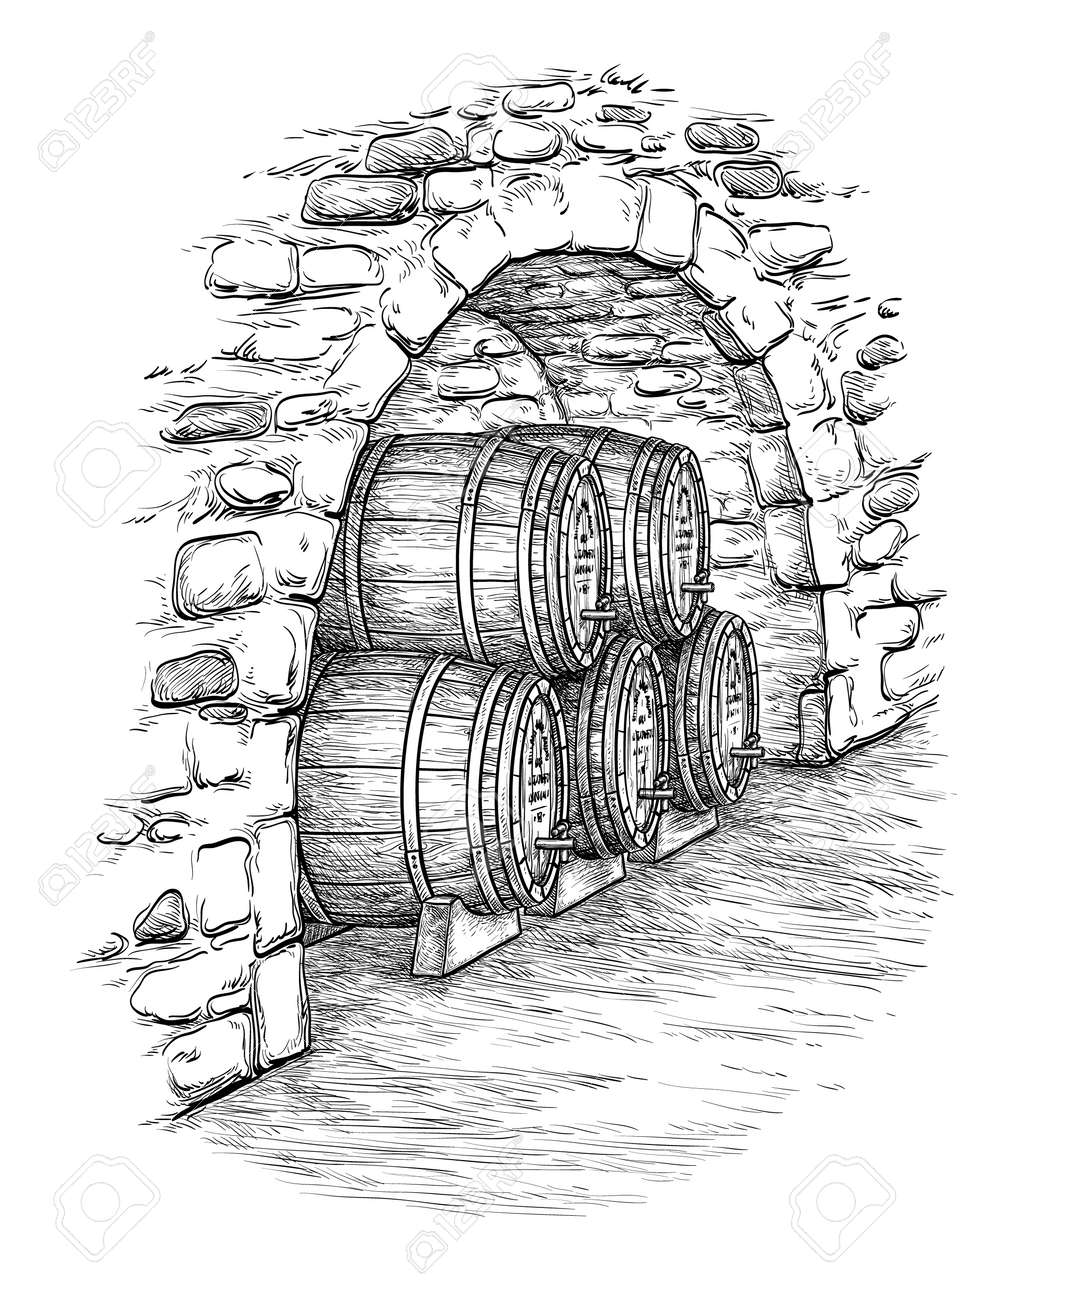 Ancient cellar with wine wooden barrels. Isolated on white background. Hand drawn vector illustration. - 64259473